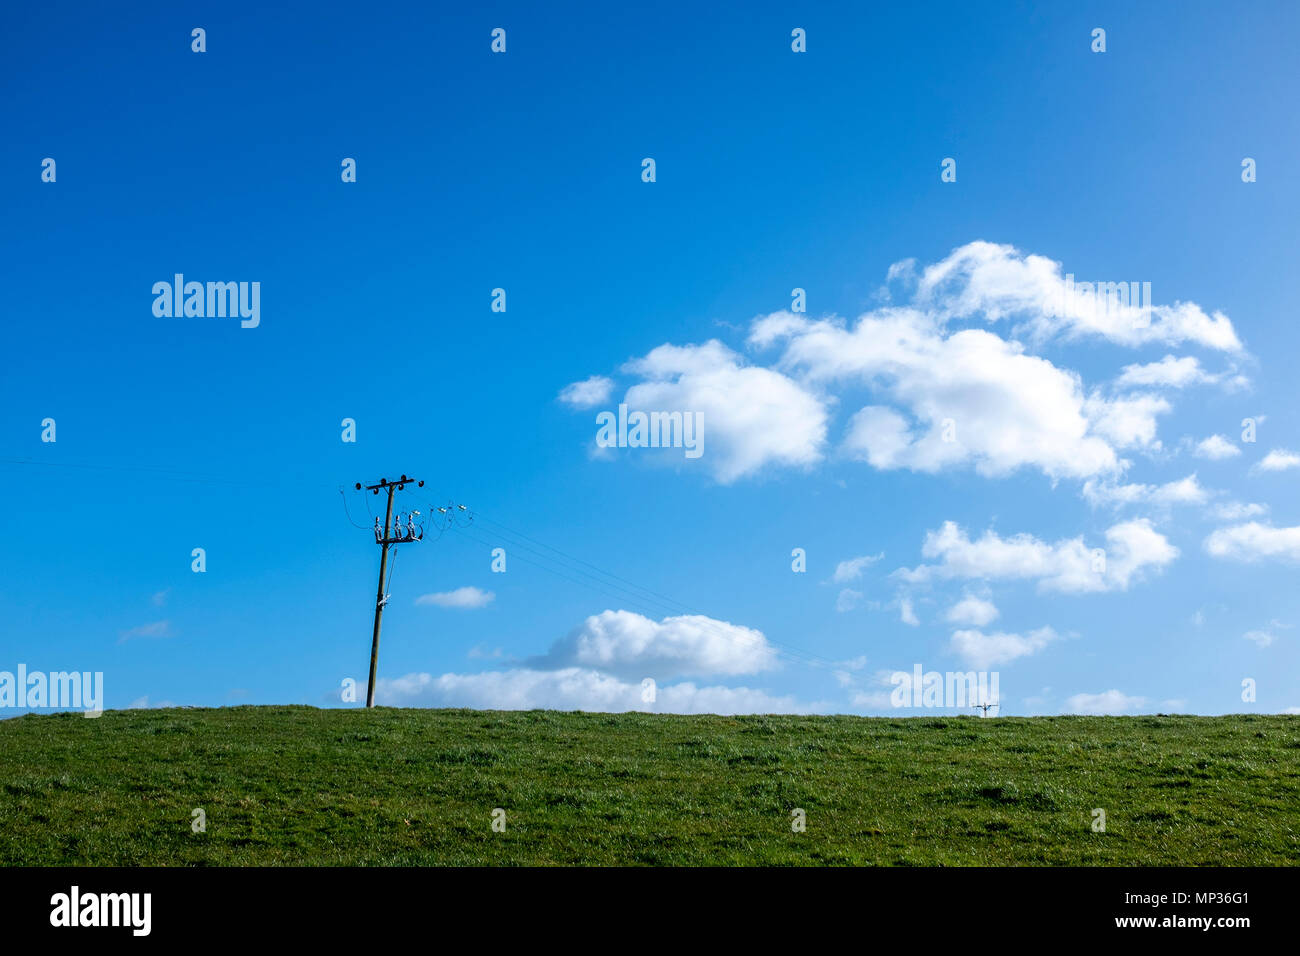 Power lines in farm land with deep blue sky and fluffy clouds in Cheshire UK Stock Photo